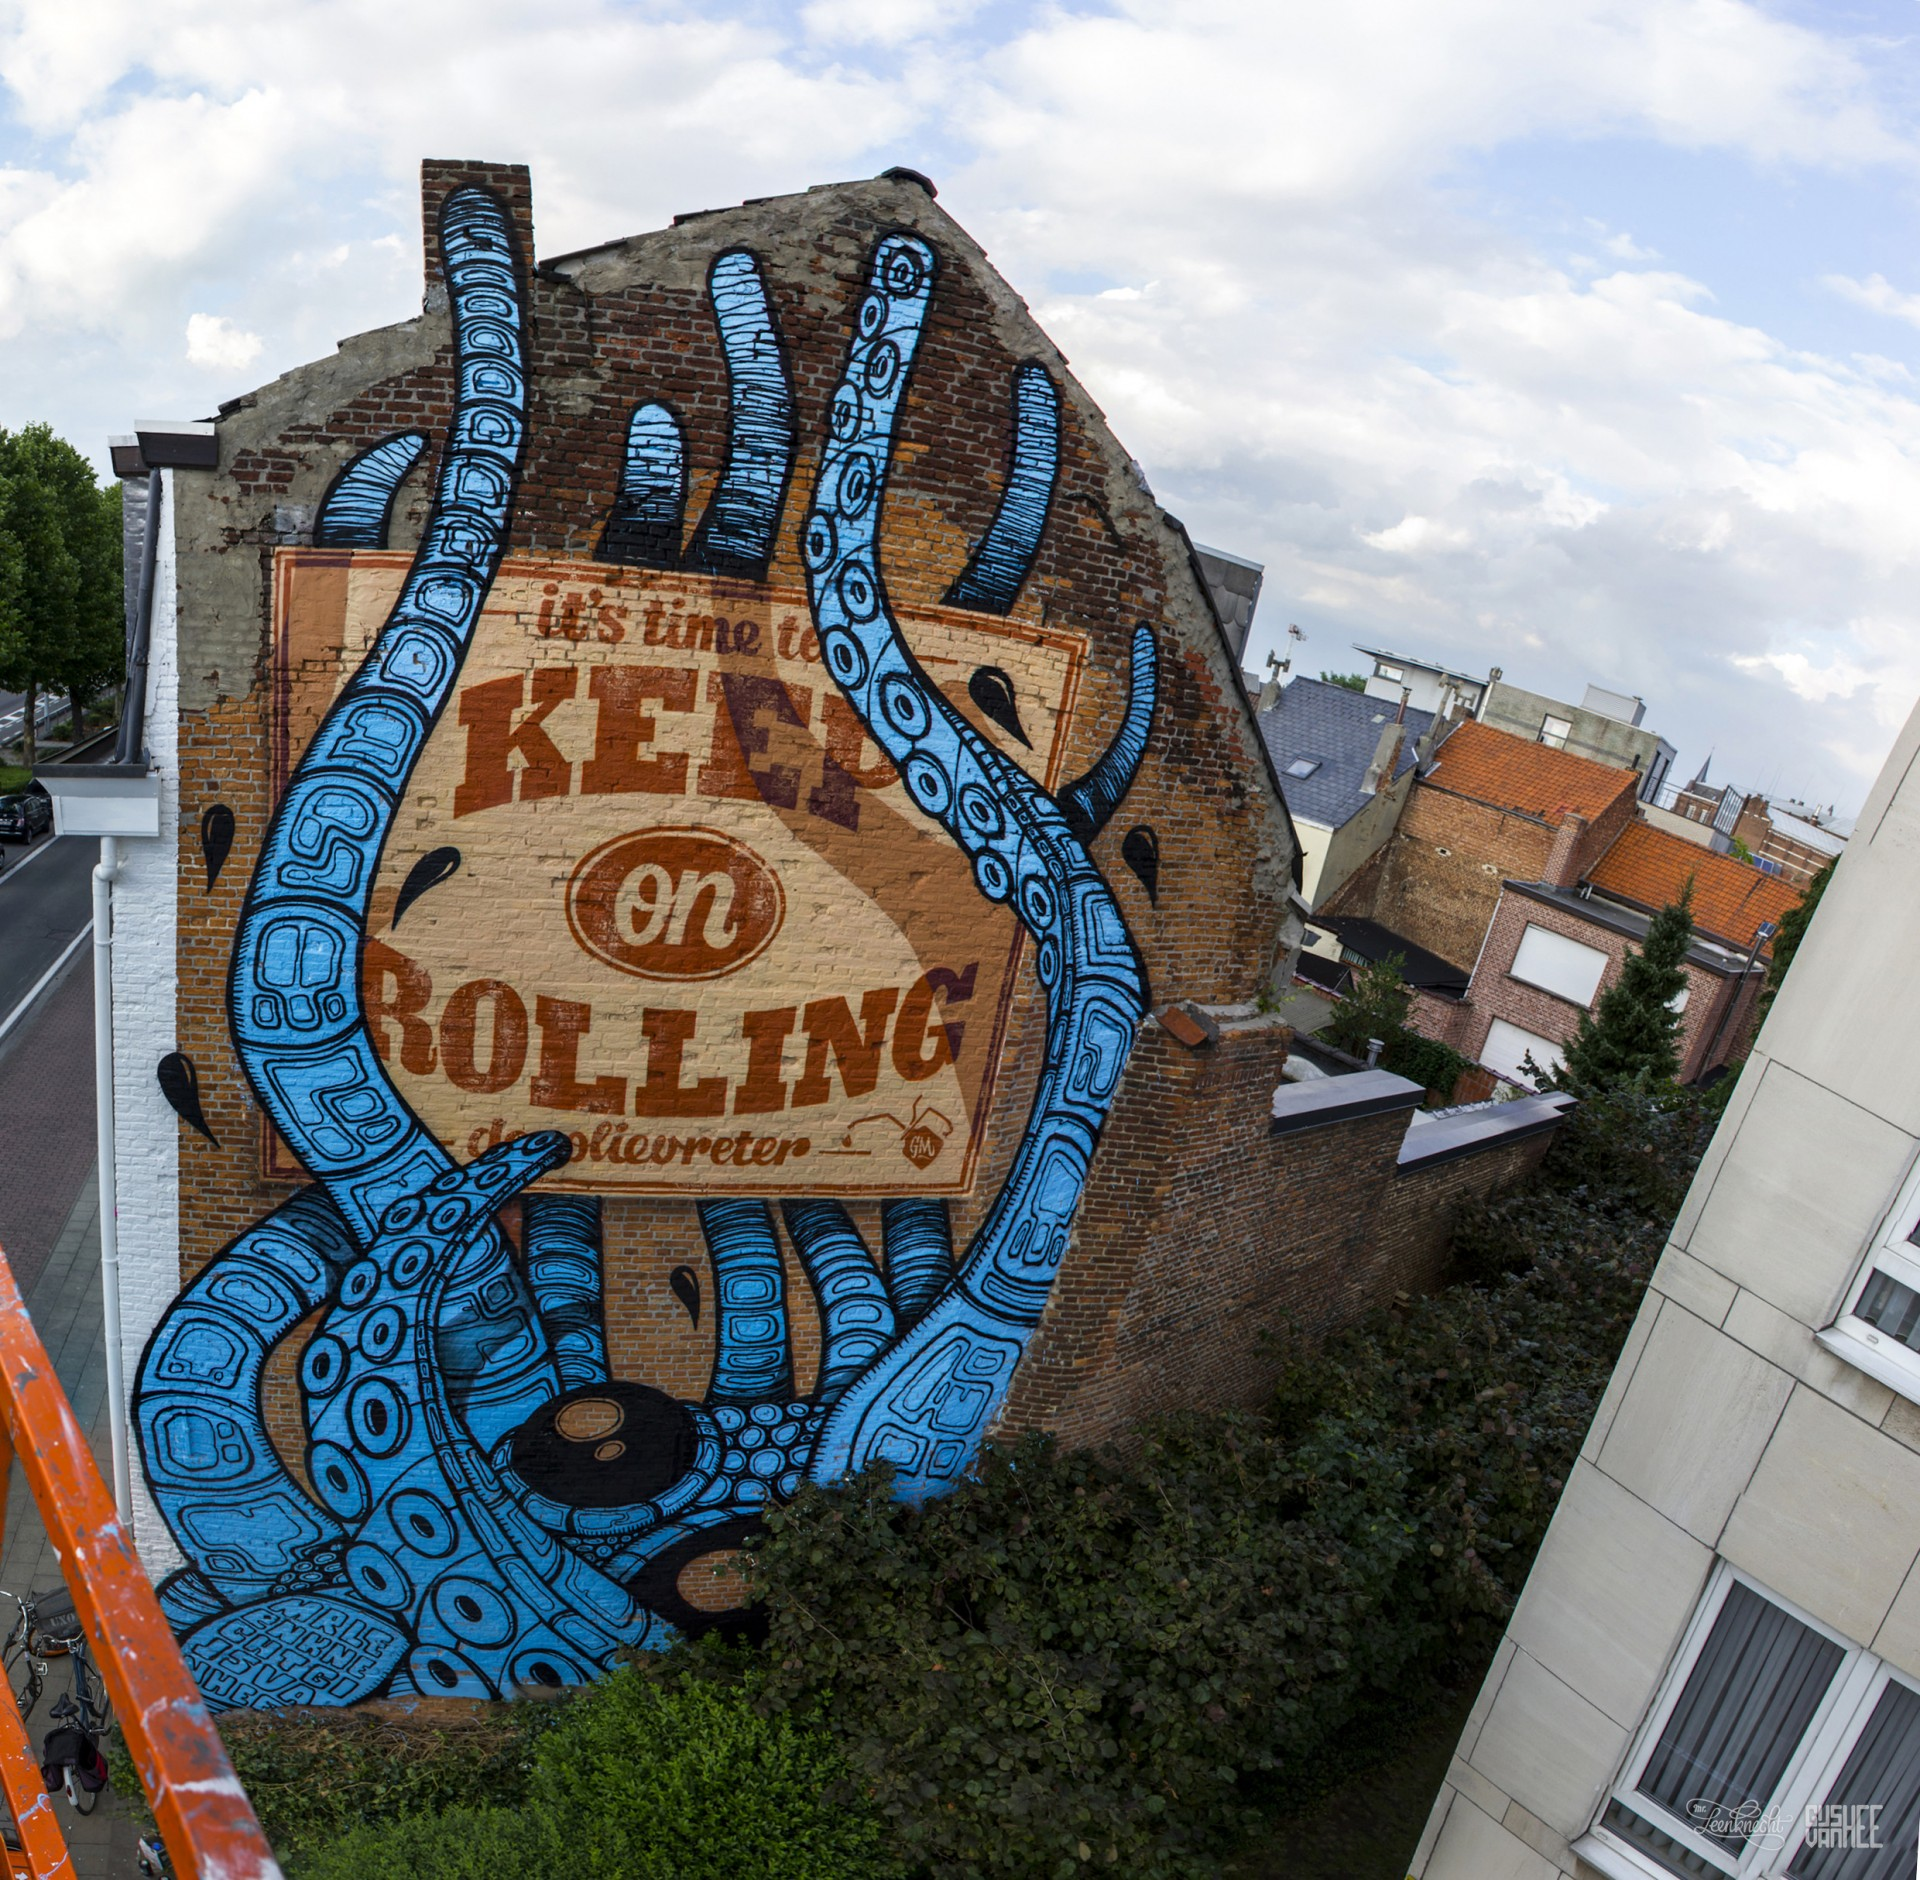 Keep on rolling: street art in Mechelen